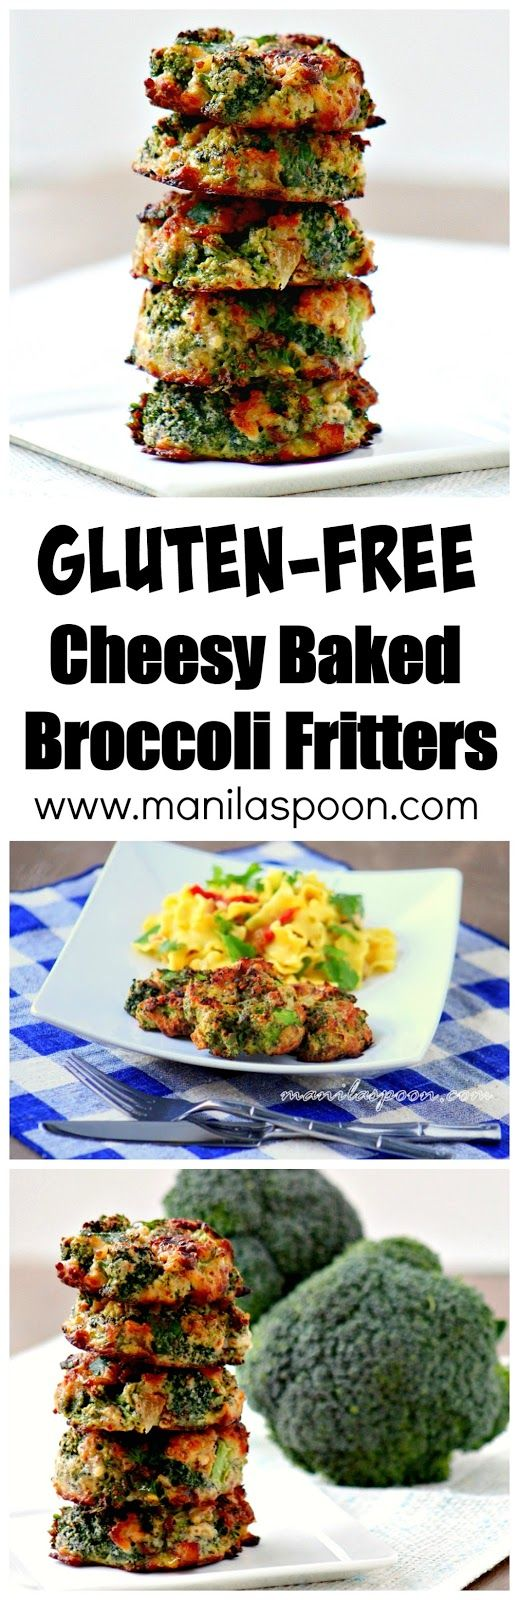 Crunchy, healthy, low-carb and completely gluten-free are these delicious Cheesy Baked Broccoli Fritters!  #cheesy #baked #broccoli #fritters #gluten #free #low #carb